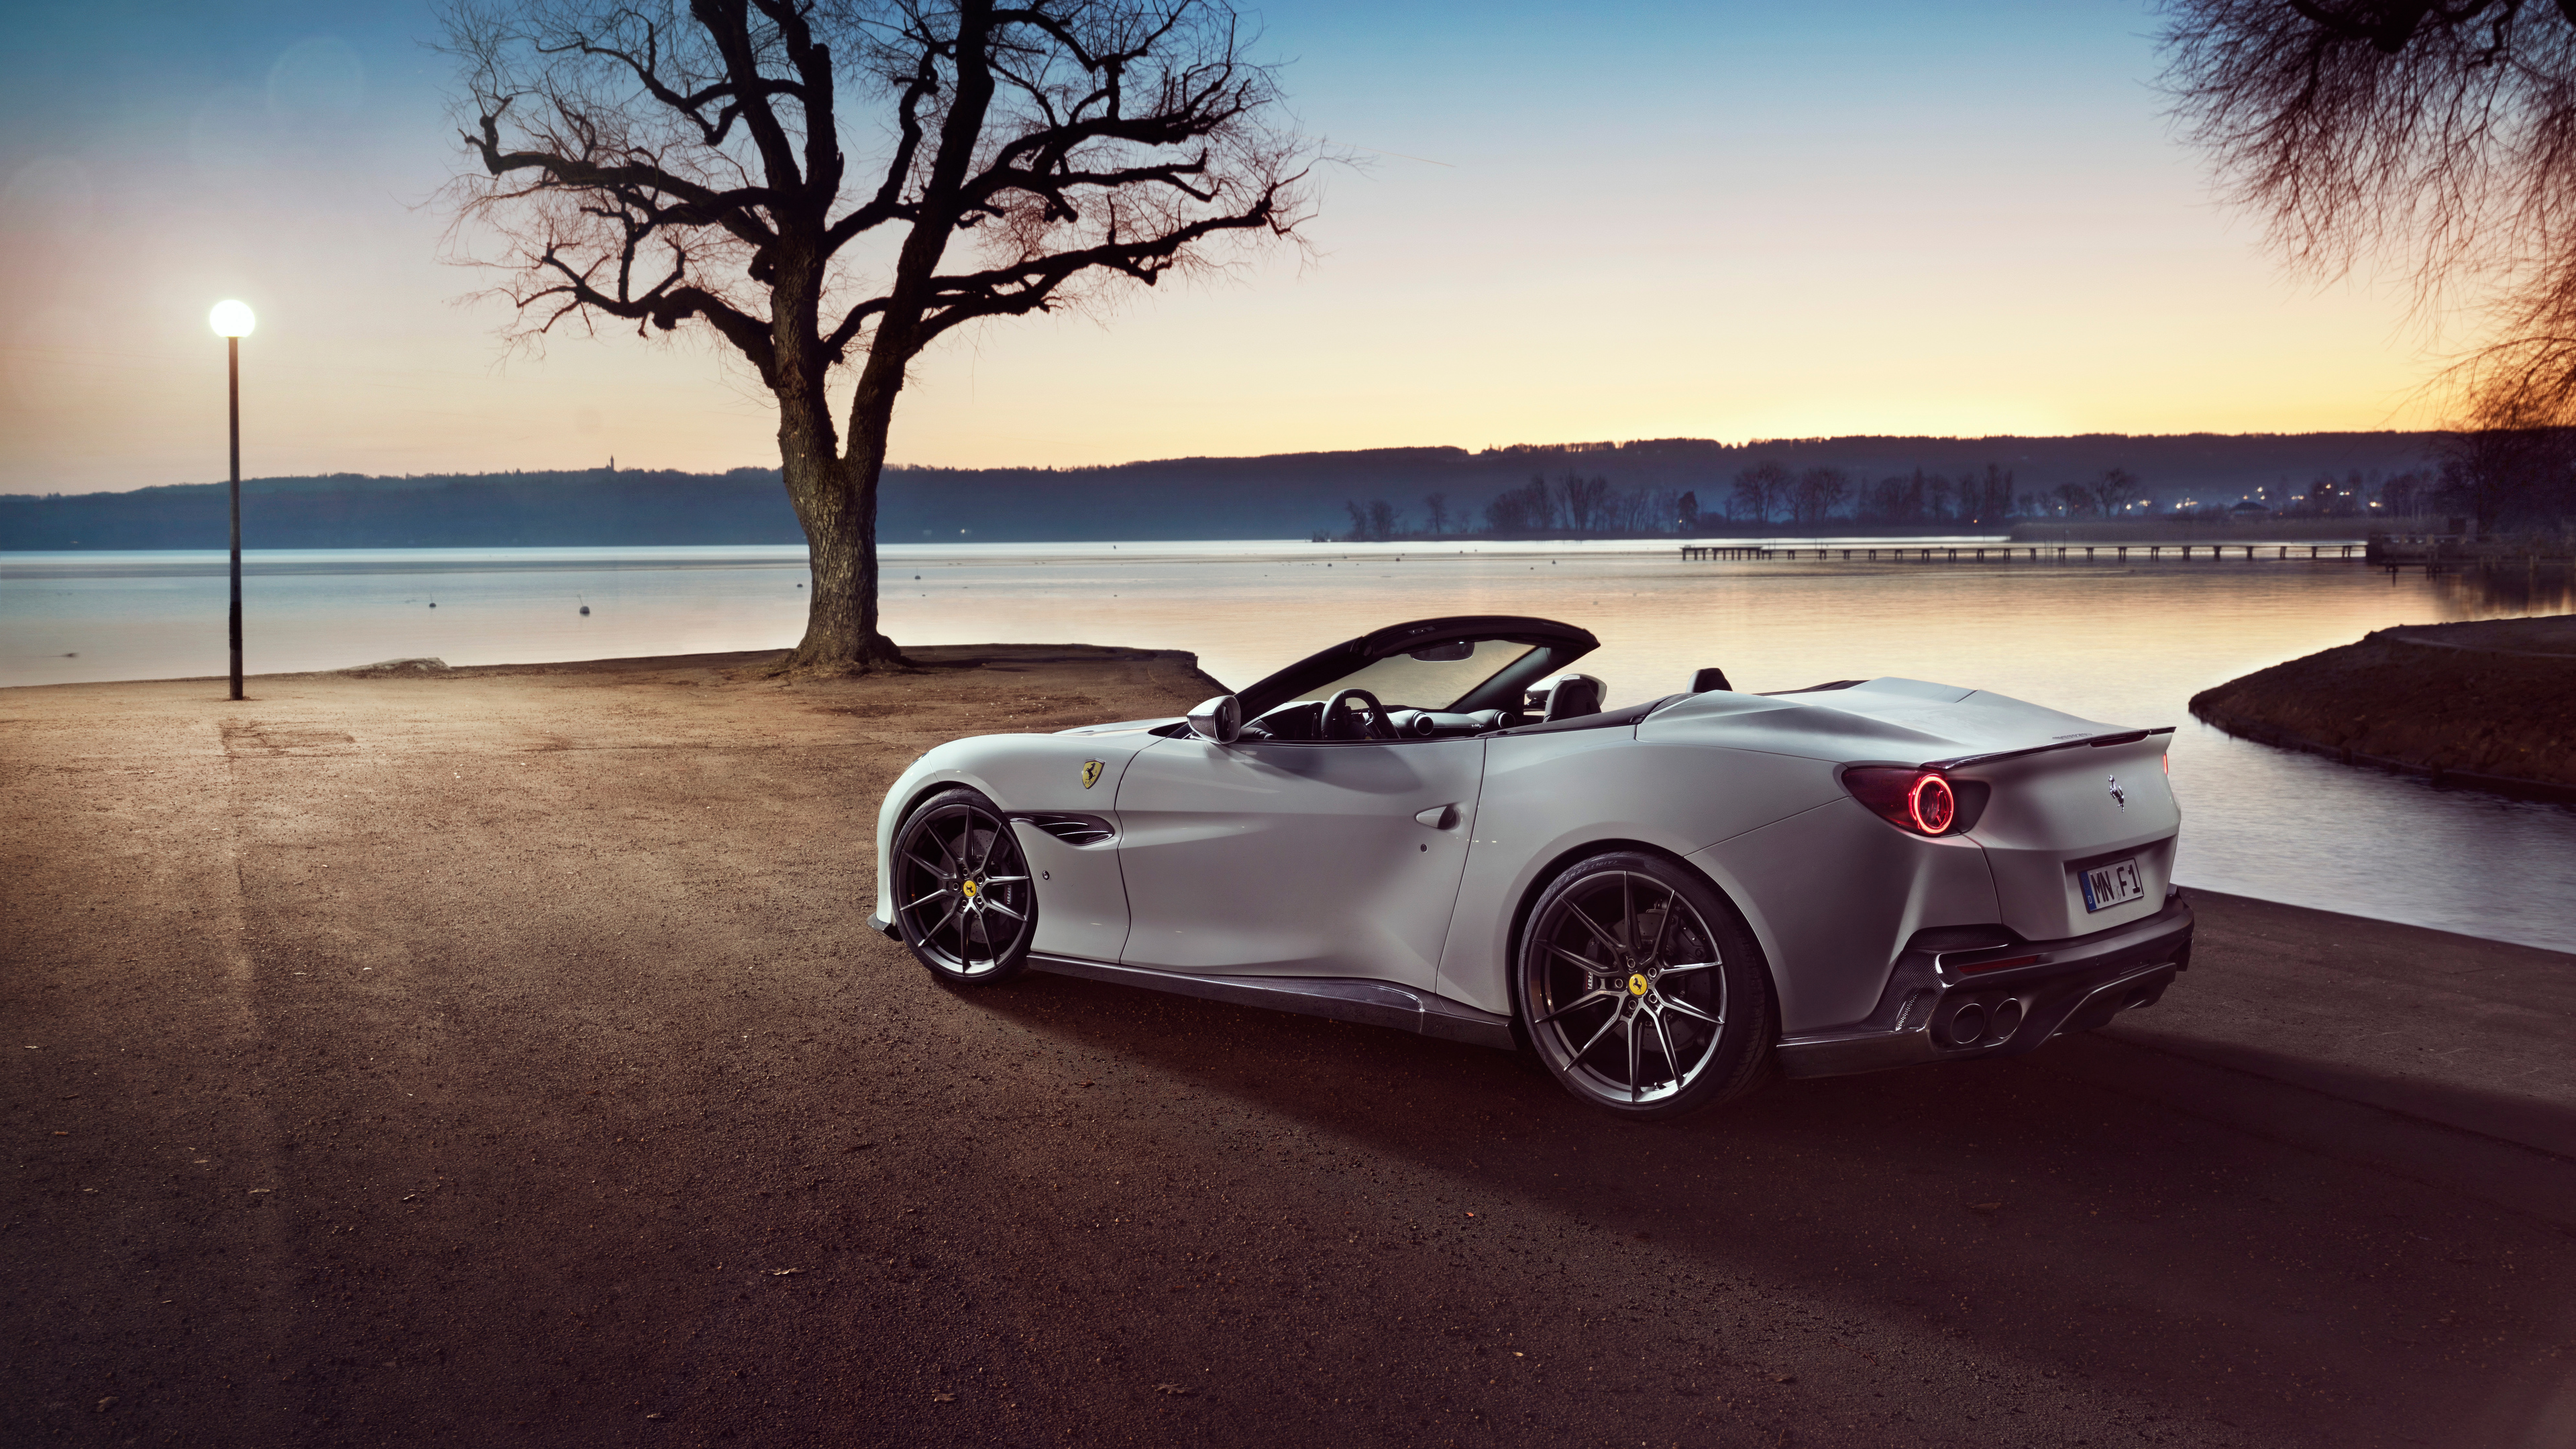 Wallpaper 4k Novitec Ferrari Portofino 2019 Rear 4k 2019 Cars